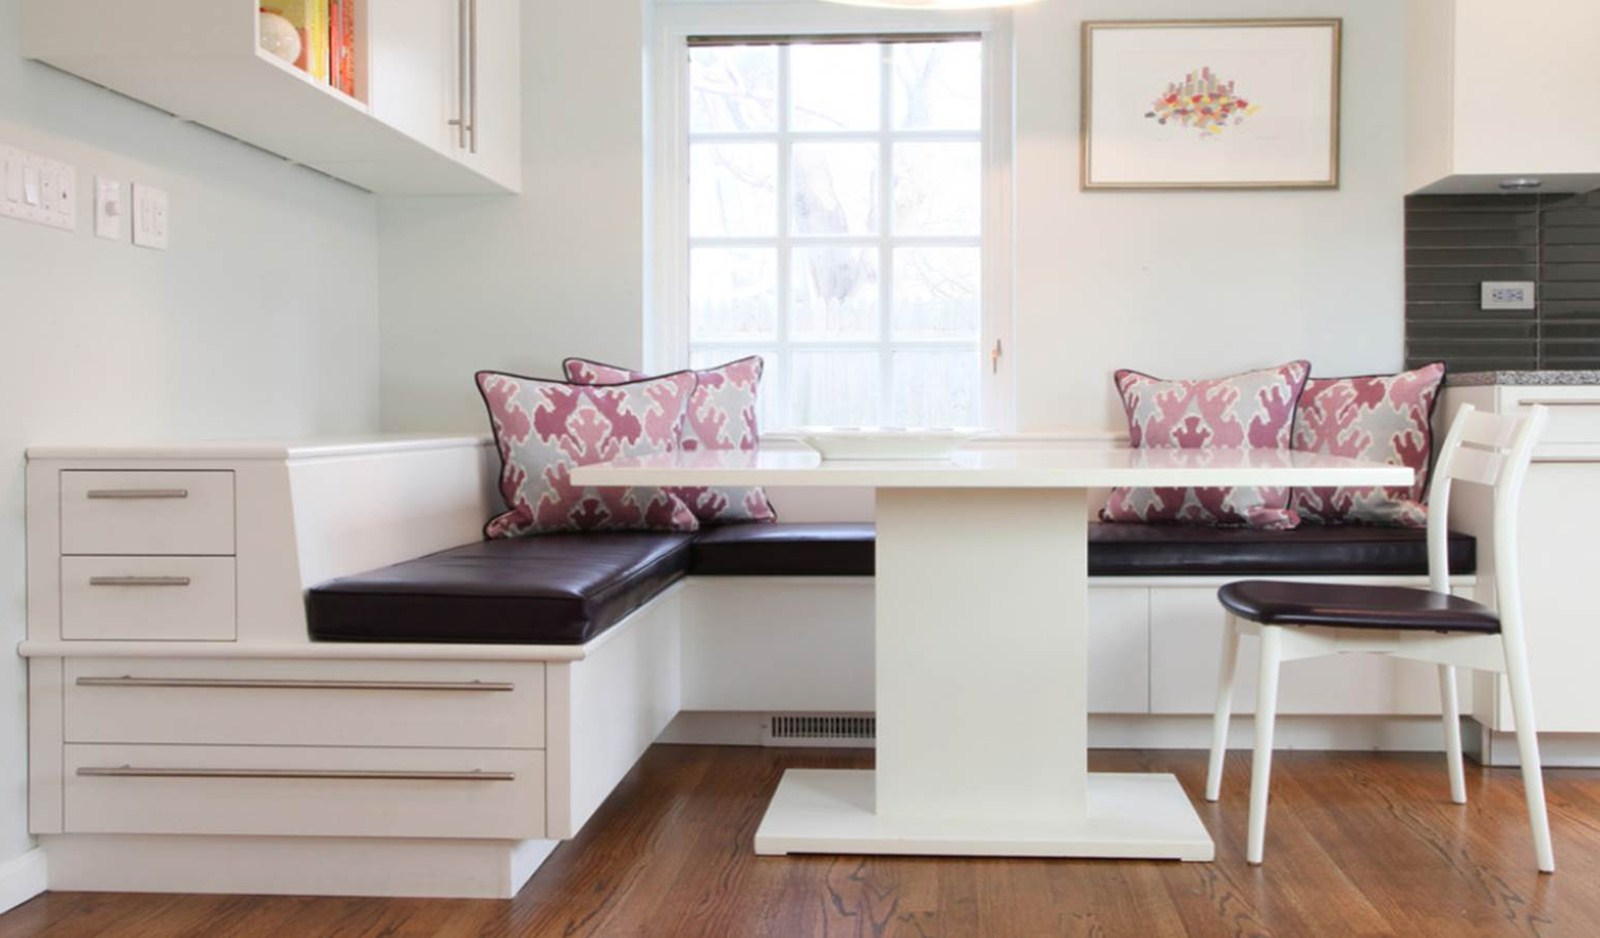 Image of: Kitchen Bench Seating Cushions